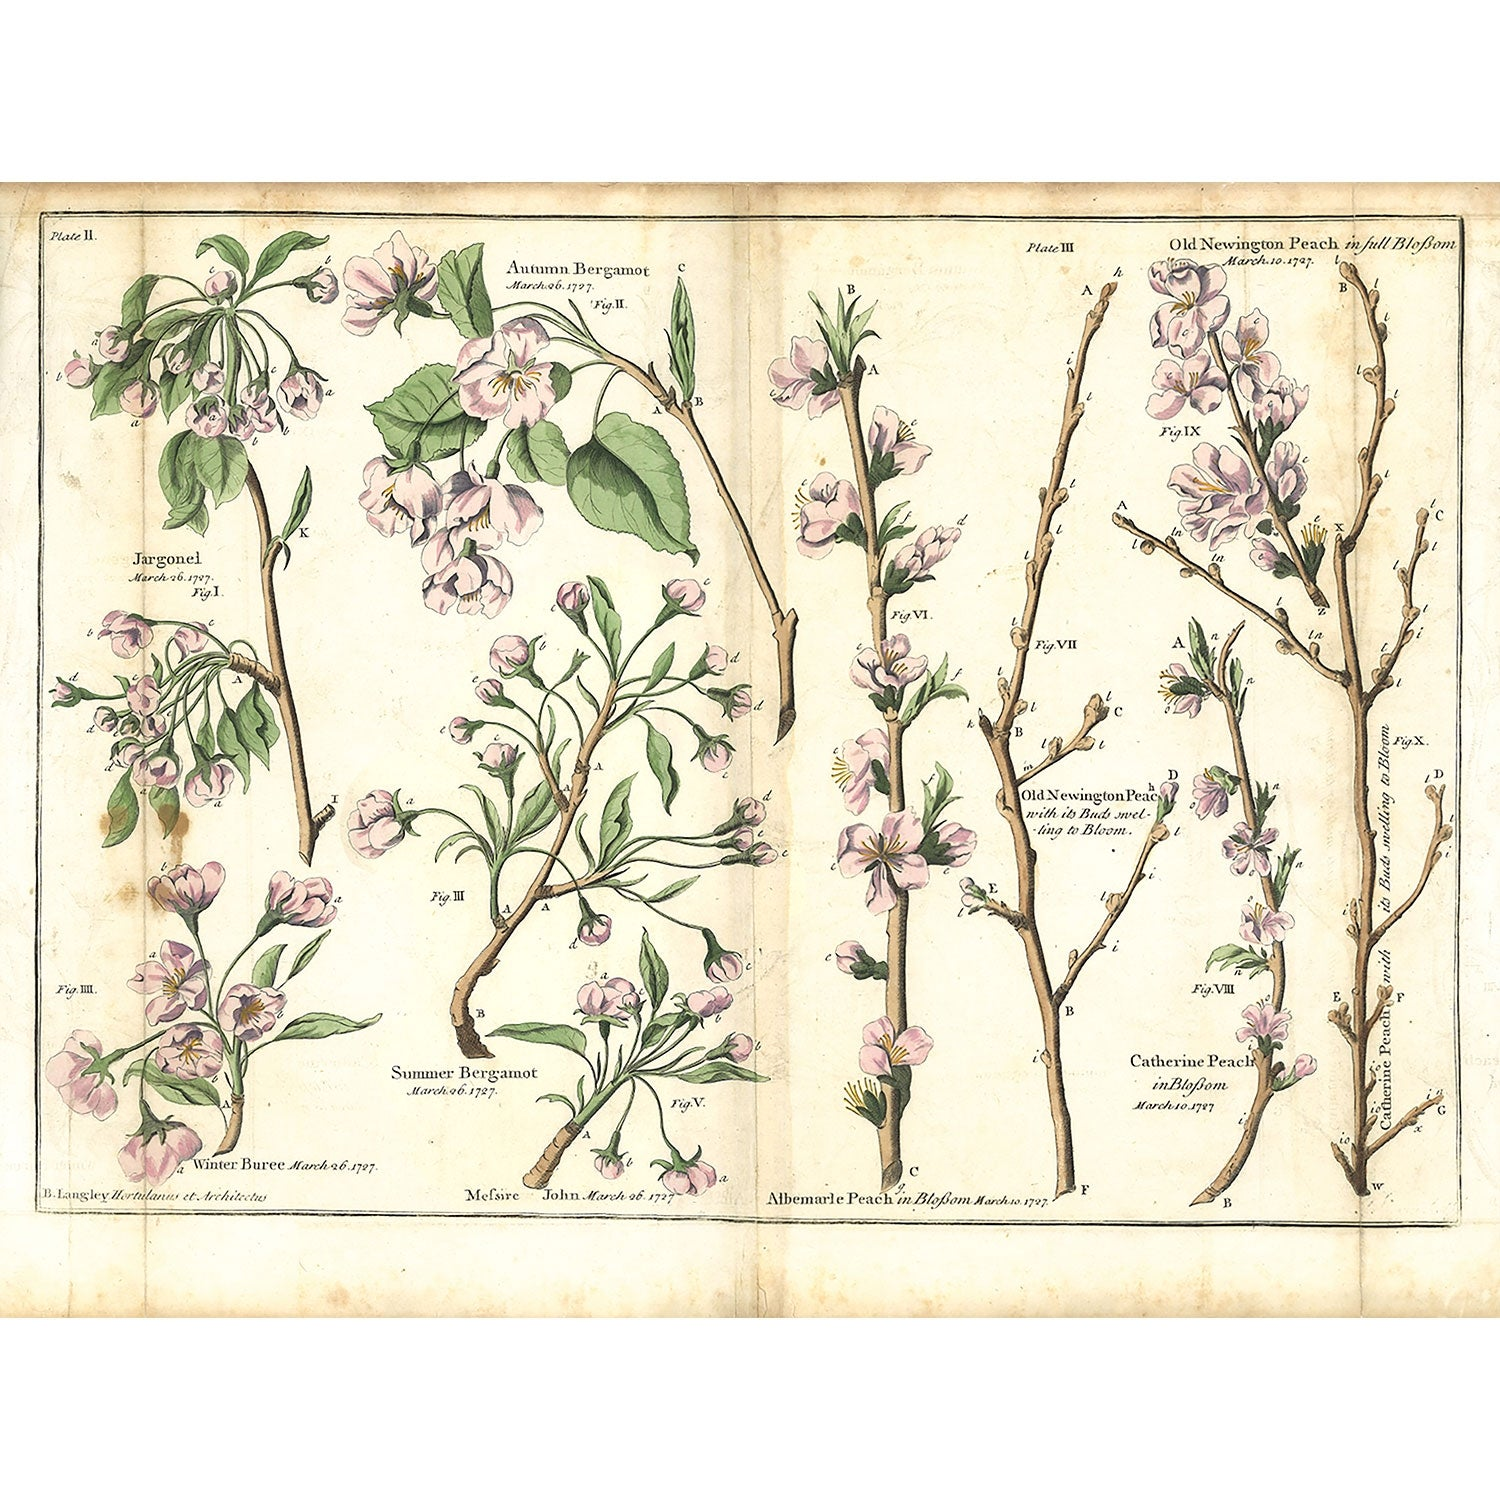 Plate II - The Illustrated Garden, 1729 by Batty Langley